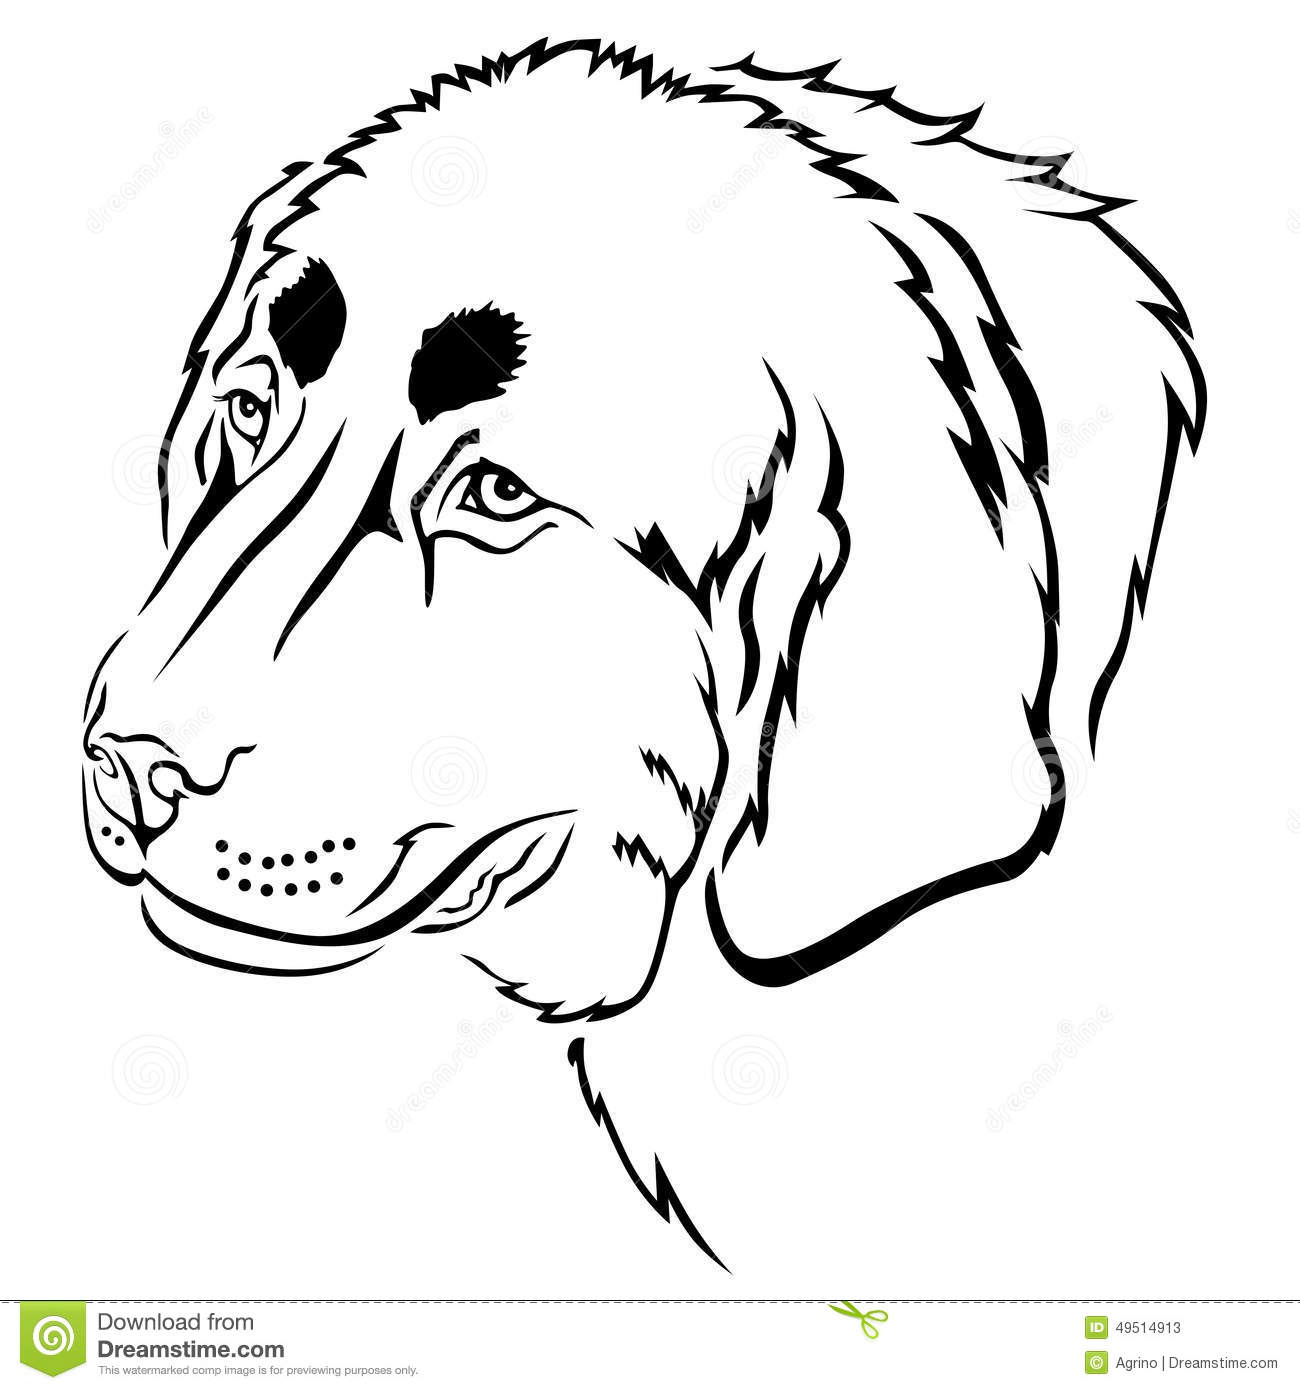 Contour Line Drawing Of Dogs : Dog muzzle contour stock vector image